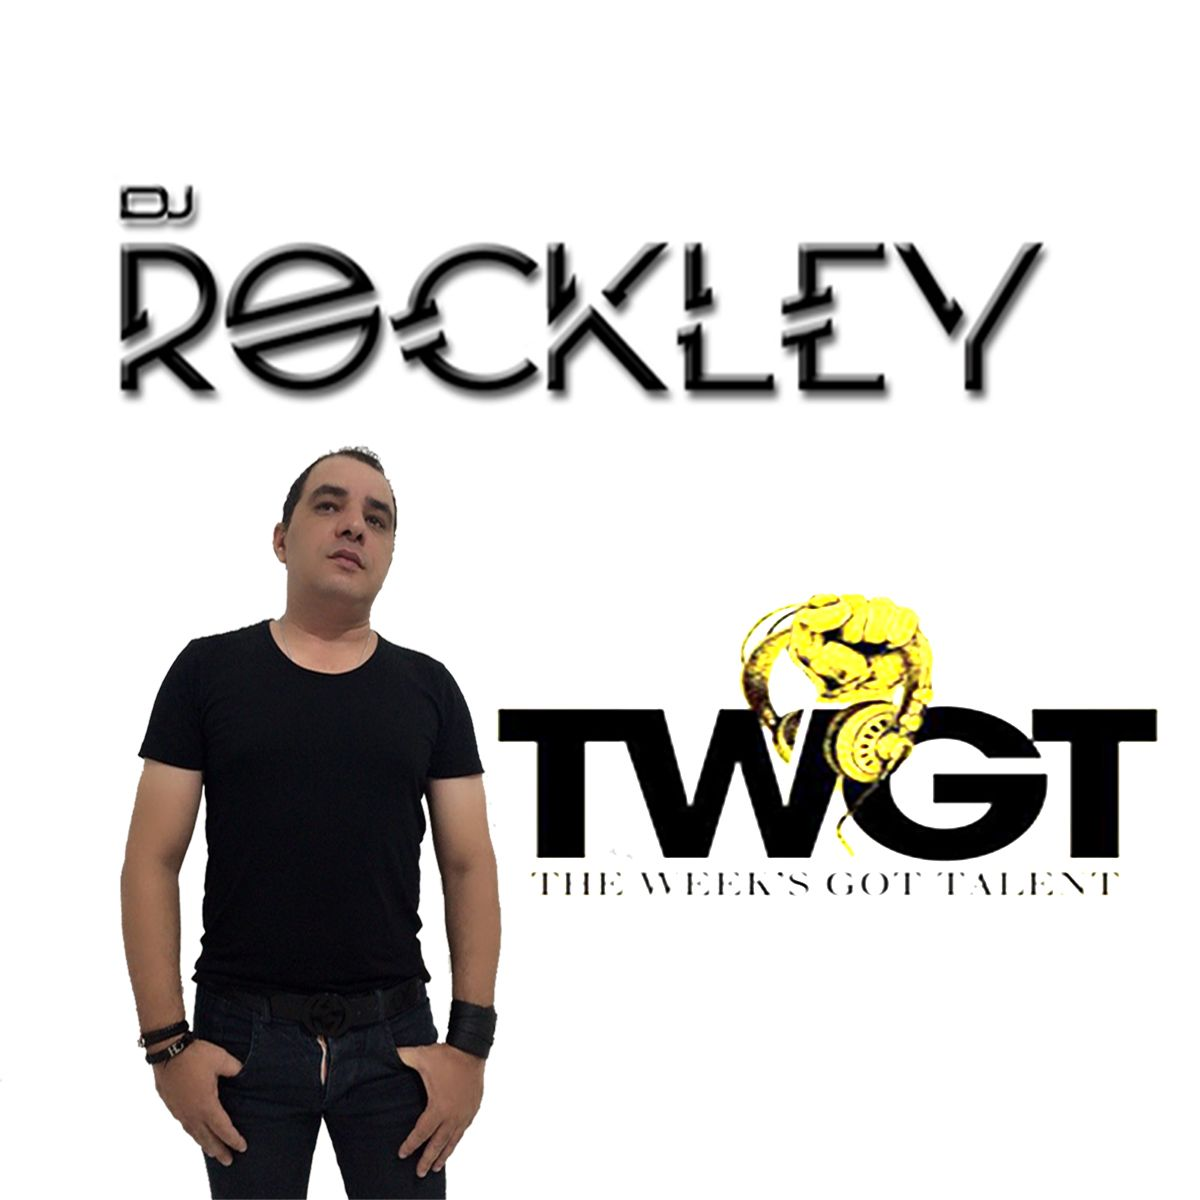 DJ Rockley - ✽ The Week Got Talent's (DJ Contest) ✽